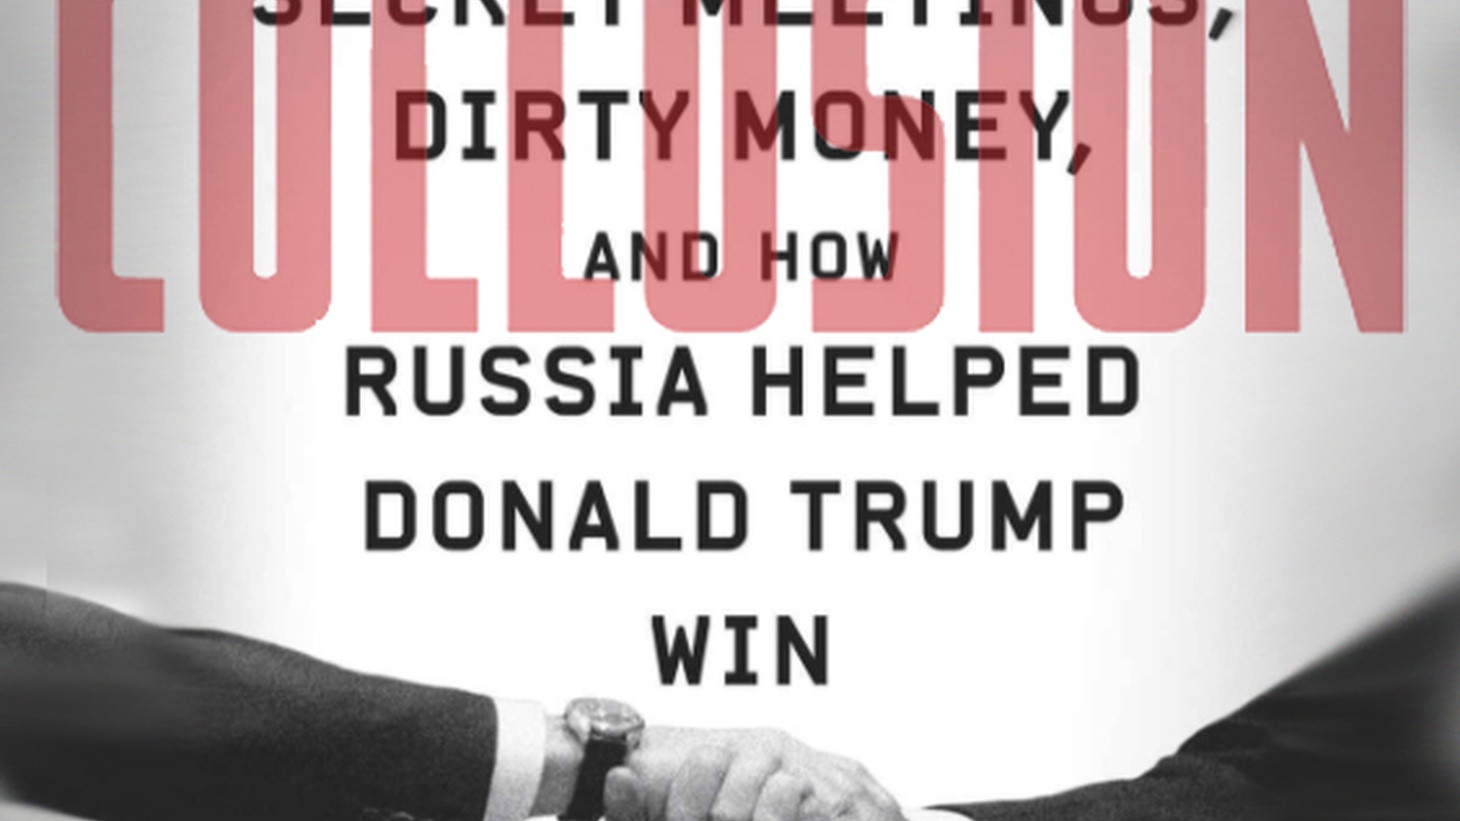 In his new book Collusionformer Moscow bureau-chief for the Guardian, Luke Harding, lays to waste any doubt that the Kremlin aided Donald J. Trump to become President of the United States.